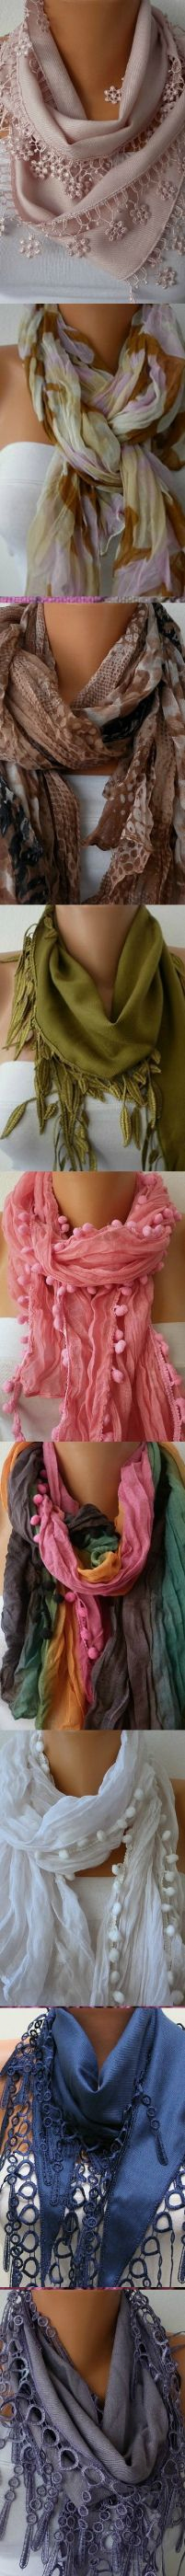 FATWOMAN(Free Scarf + Express Shipping) $13.50